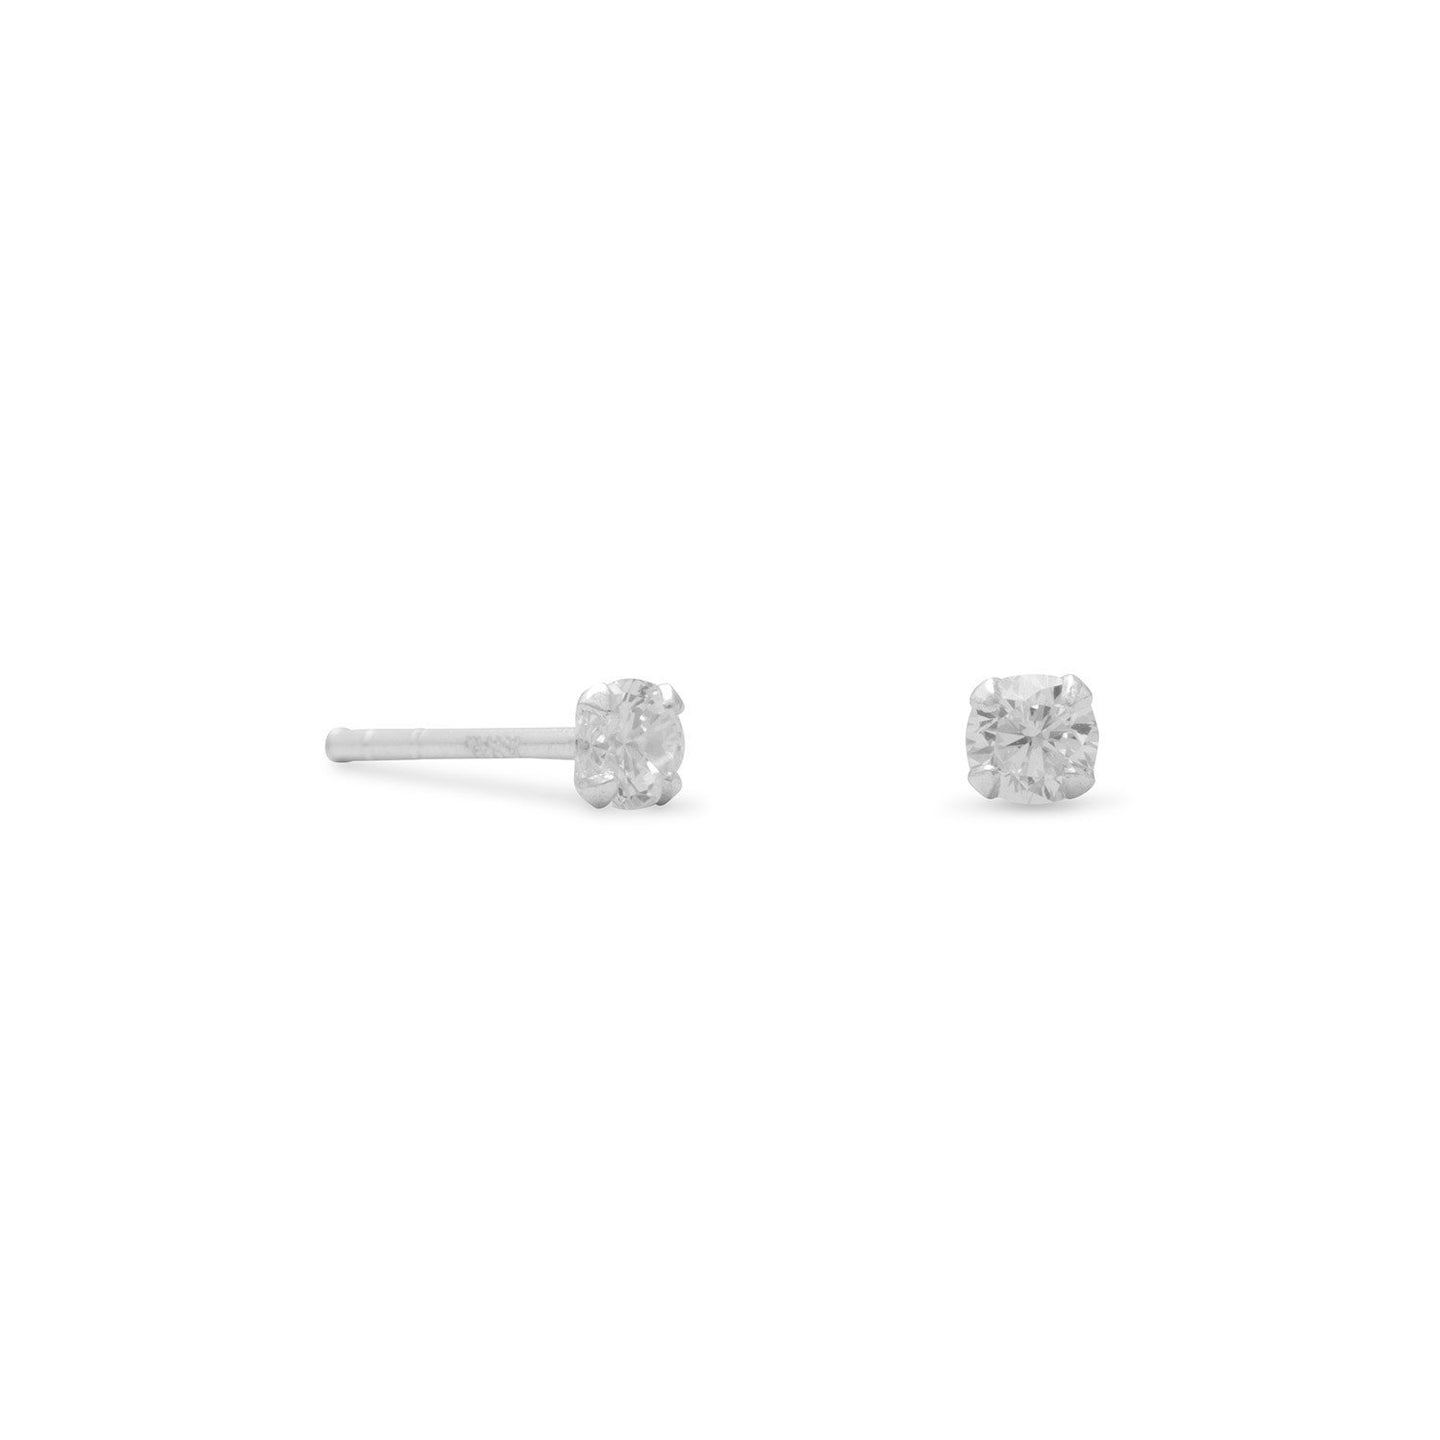 Silver Cubic Zirconia CZ Stud Earrings - the-southern-magnolia-too